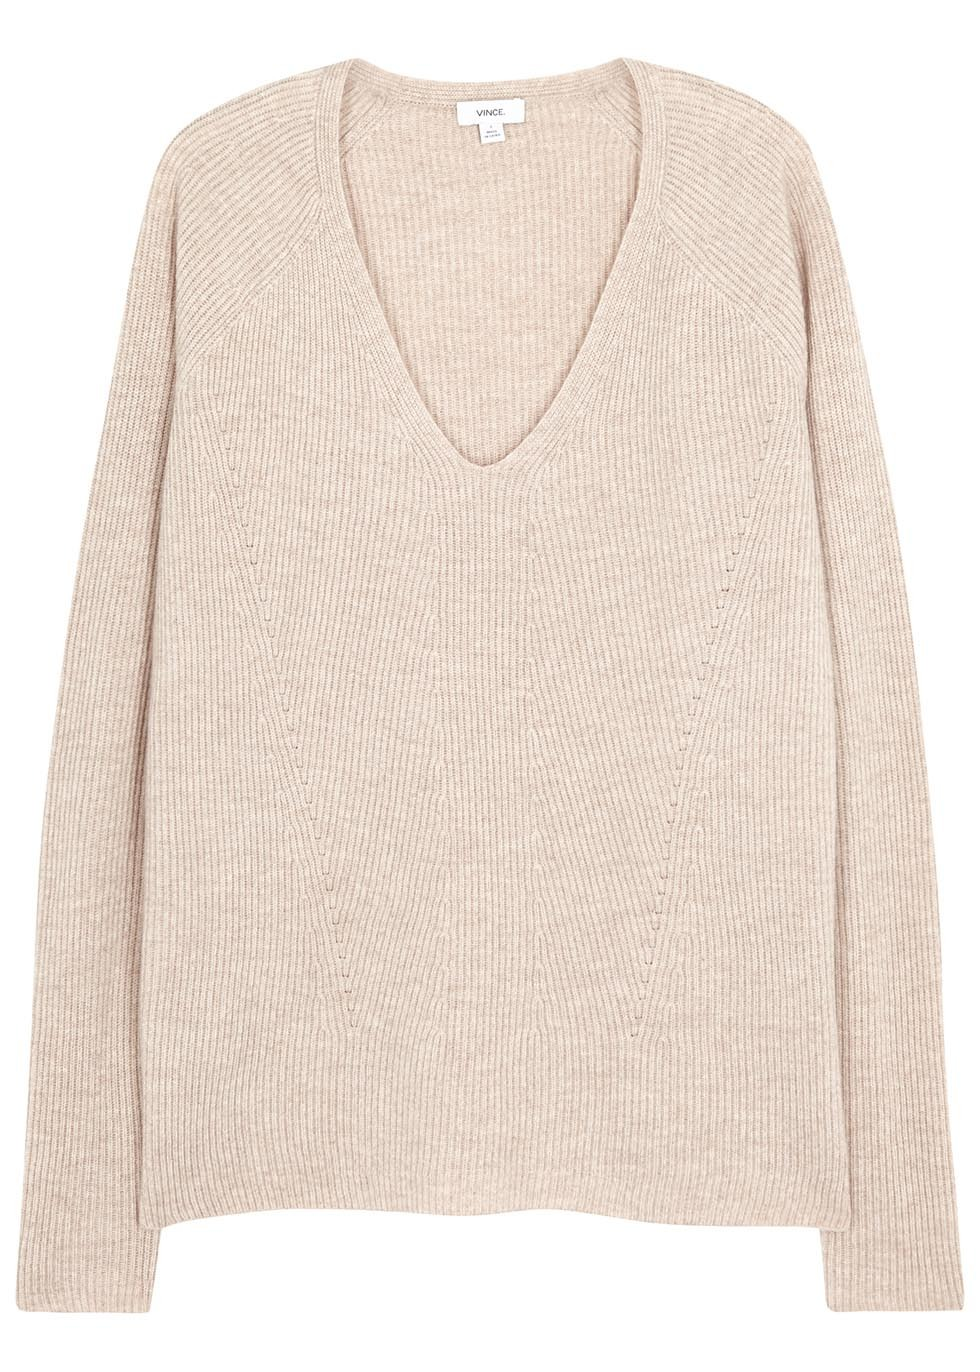 Oatmeal Ribbed Wool Blend Jumper - neckline: v-neck; pattern: plain; style: standard; predominant colour: nude; occasions: casual; length: standard; fibres: wool - mix; fit: standard fit; sleeve length: long sleeve; sleeve style: standard; texture group: knits/crochet; pattern type: knitted - fine stitch; season: s/s 2016; wardrobe: basic